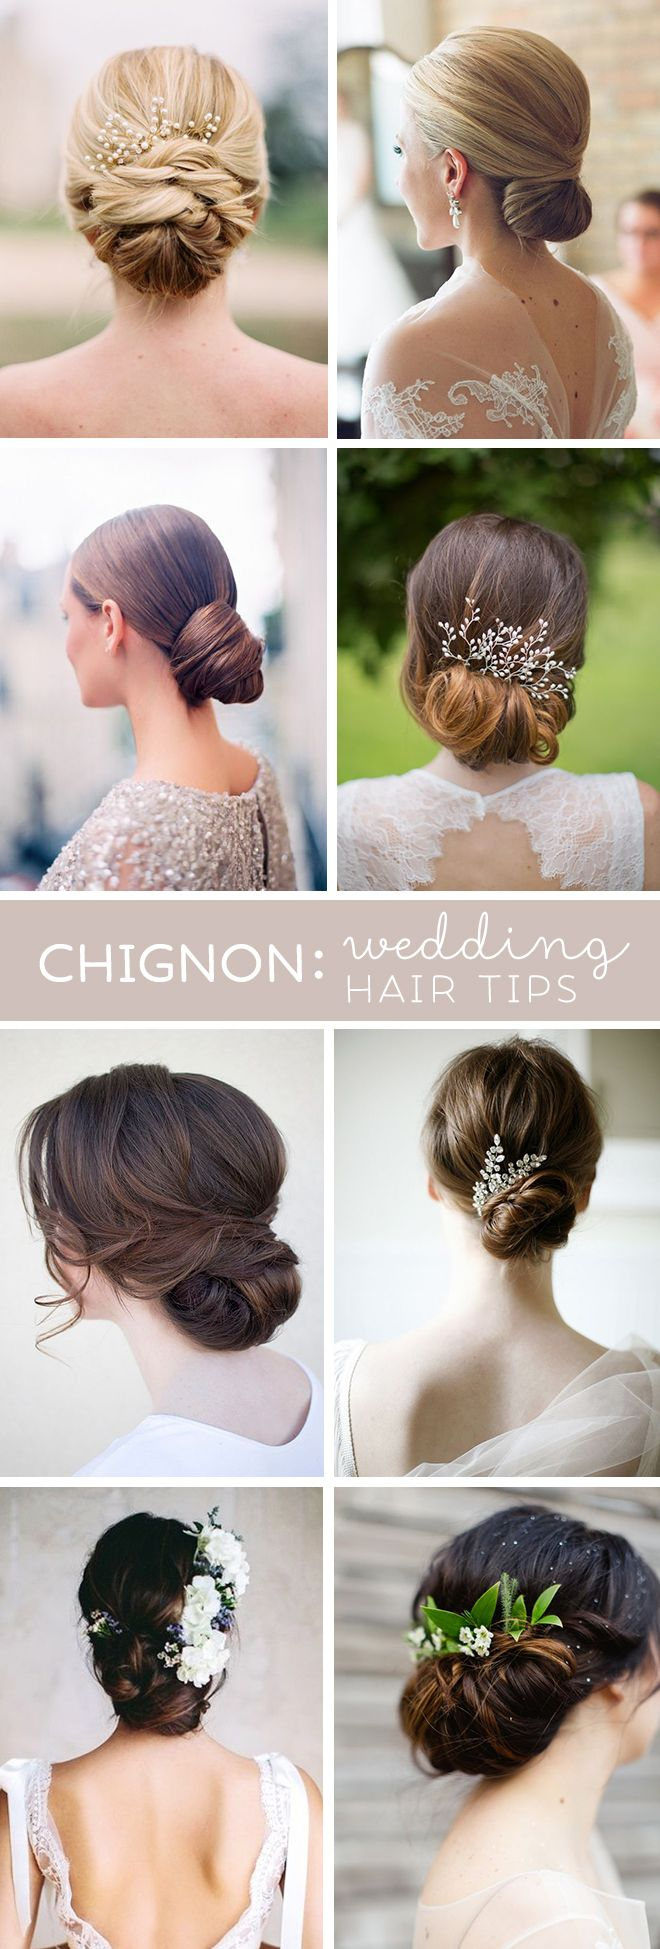 The Best Wedding Hair Tips For Wearing A Chignon!